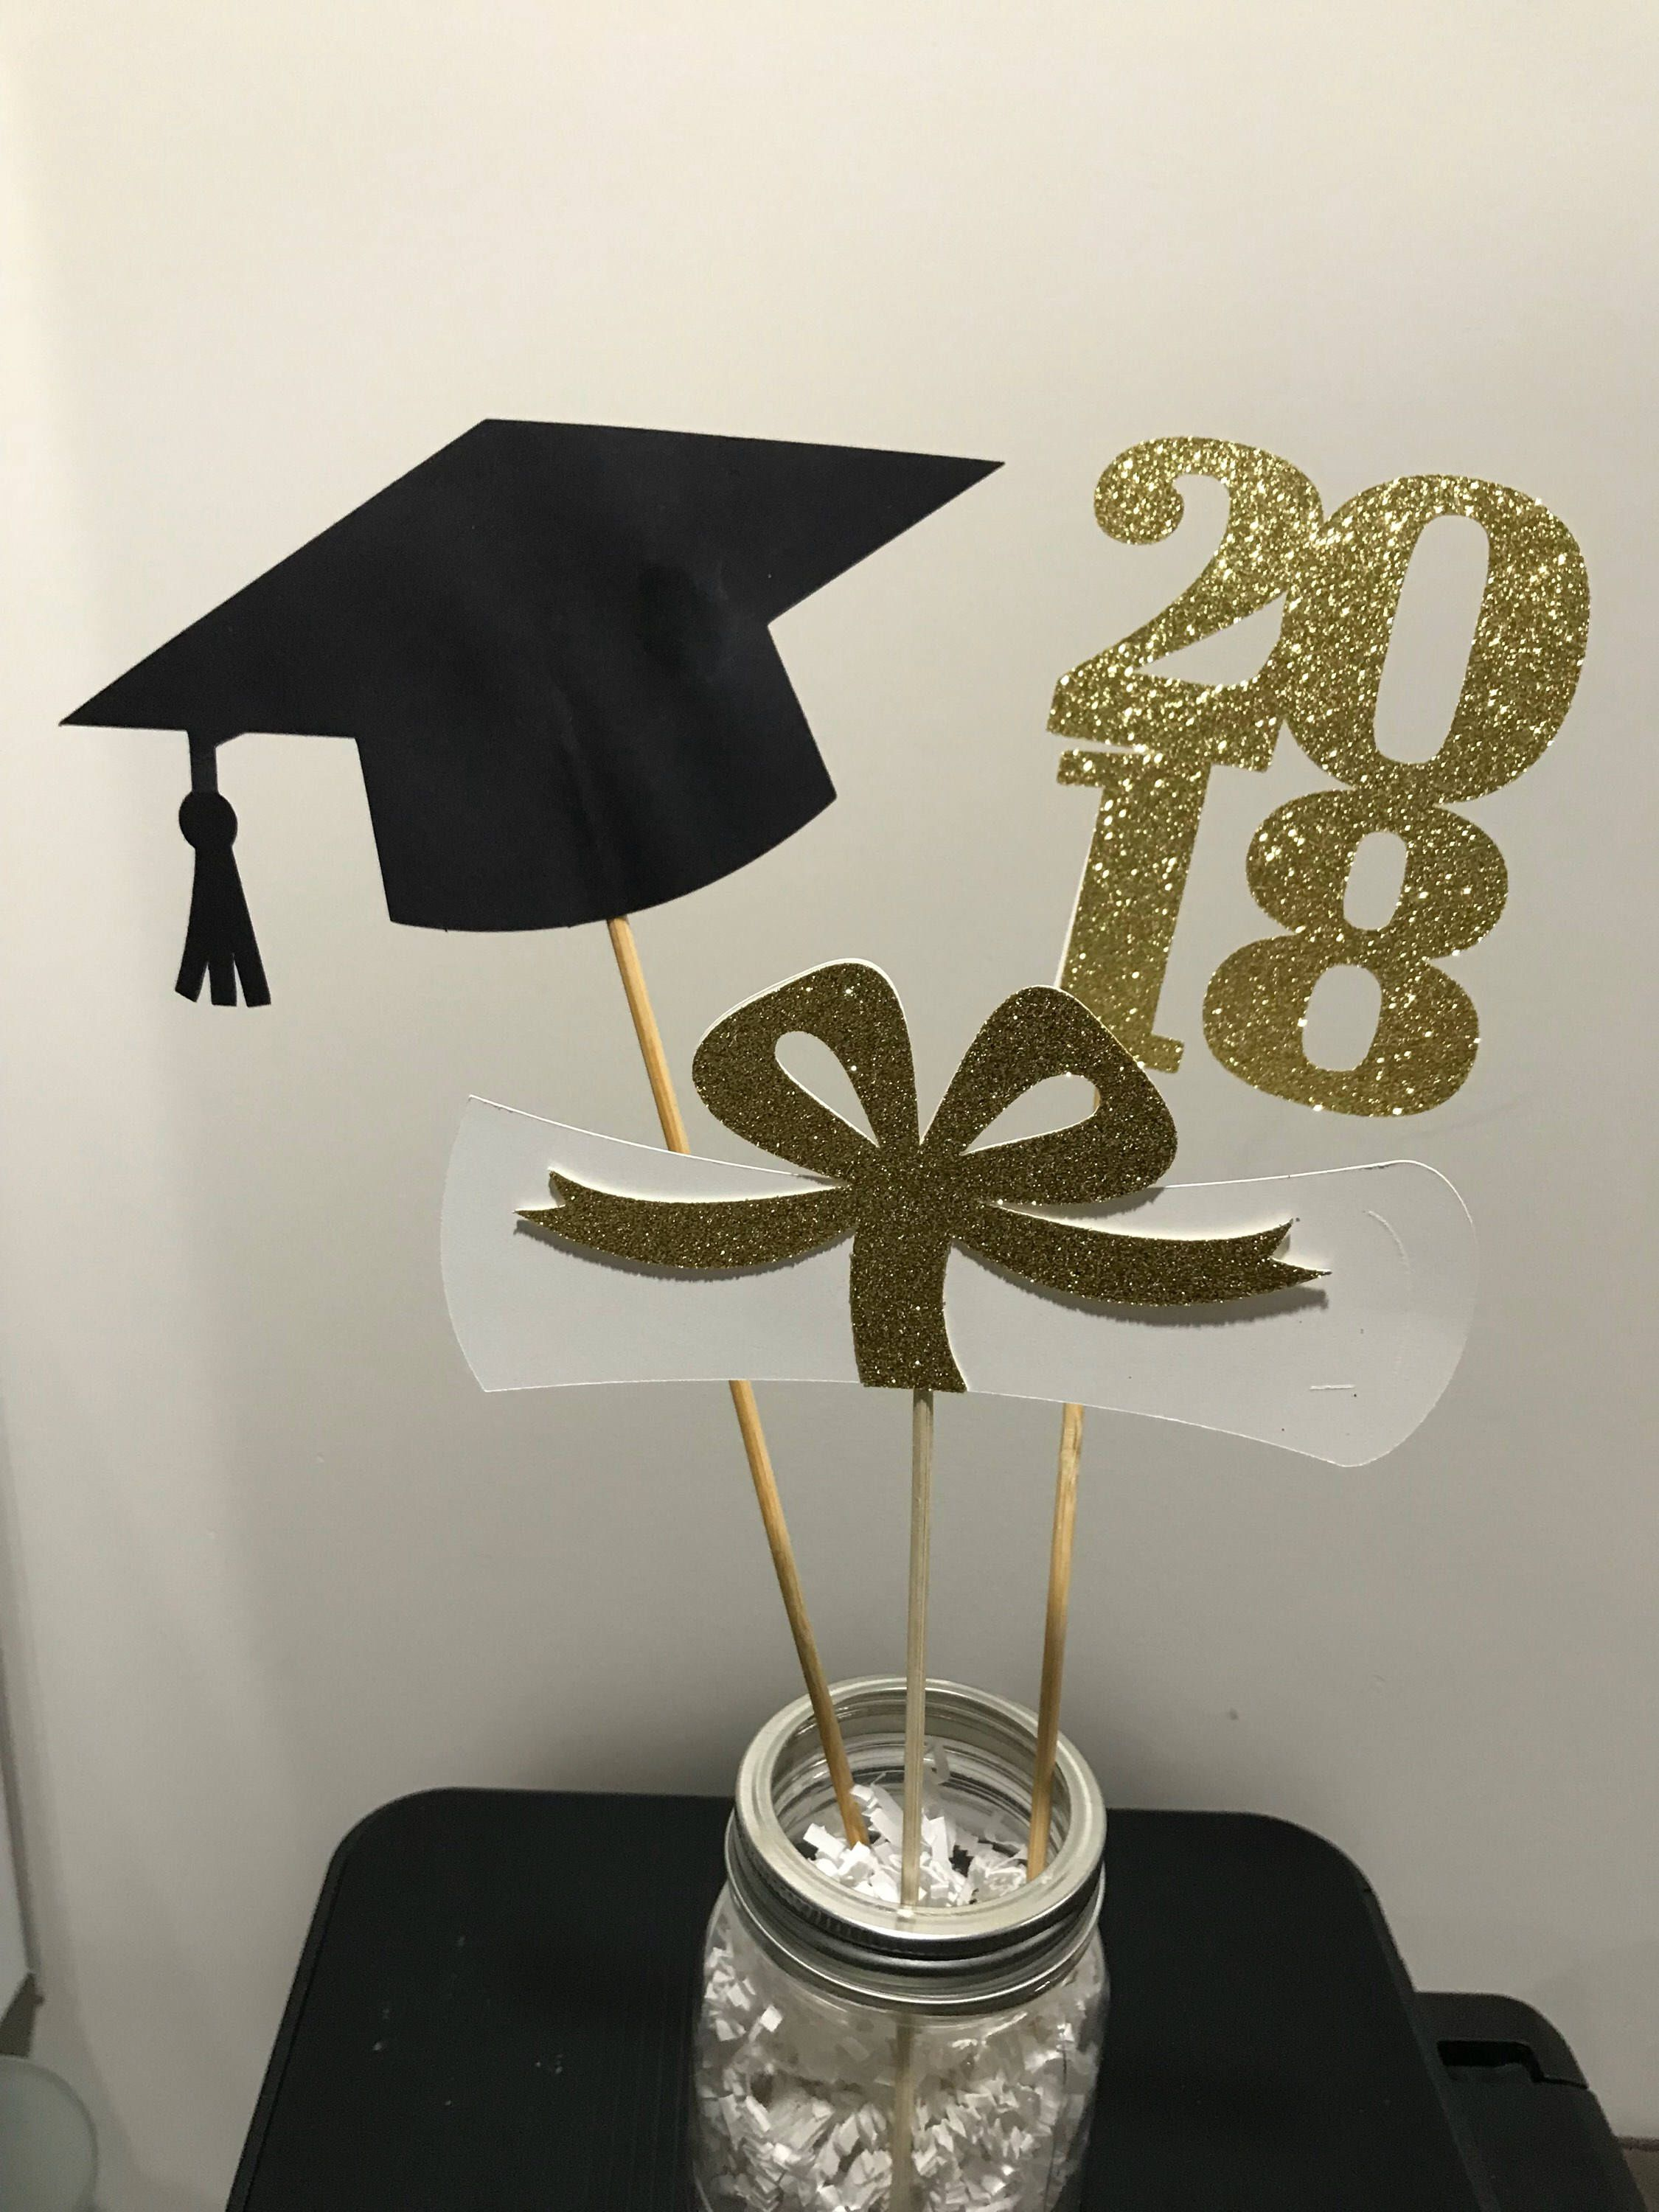 Graduation party decorations 2018 Graduation Centerpiece Sticks